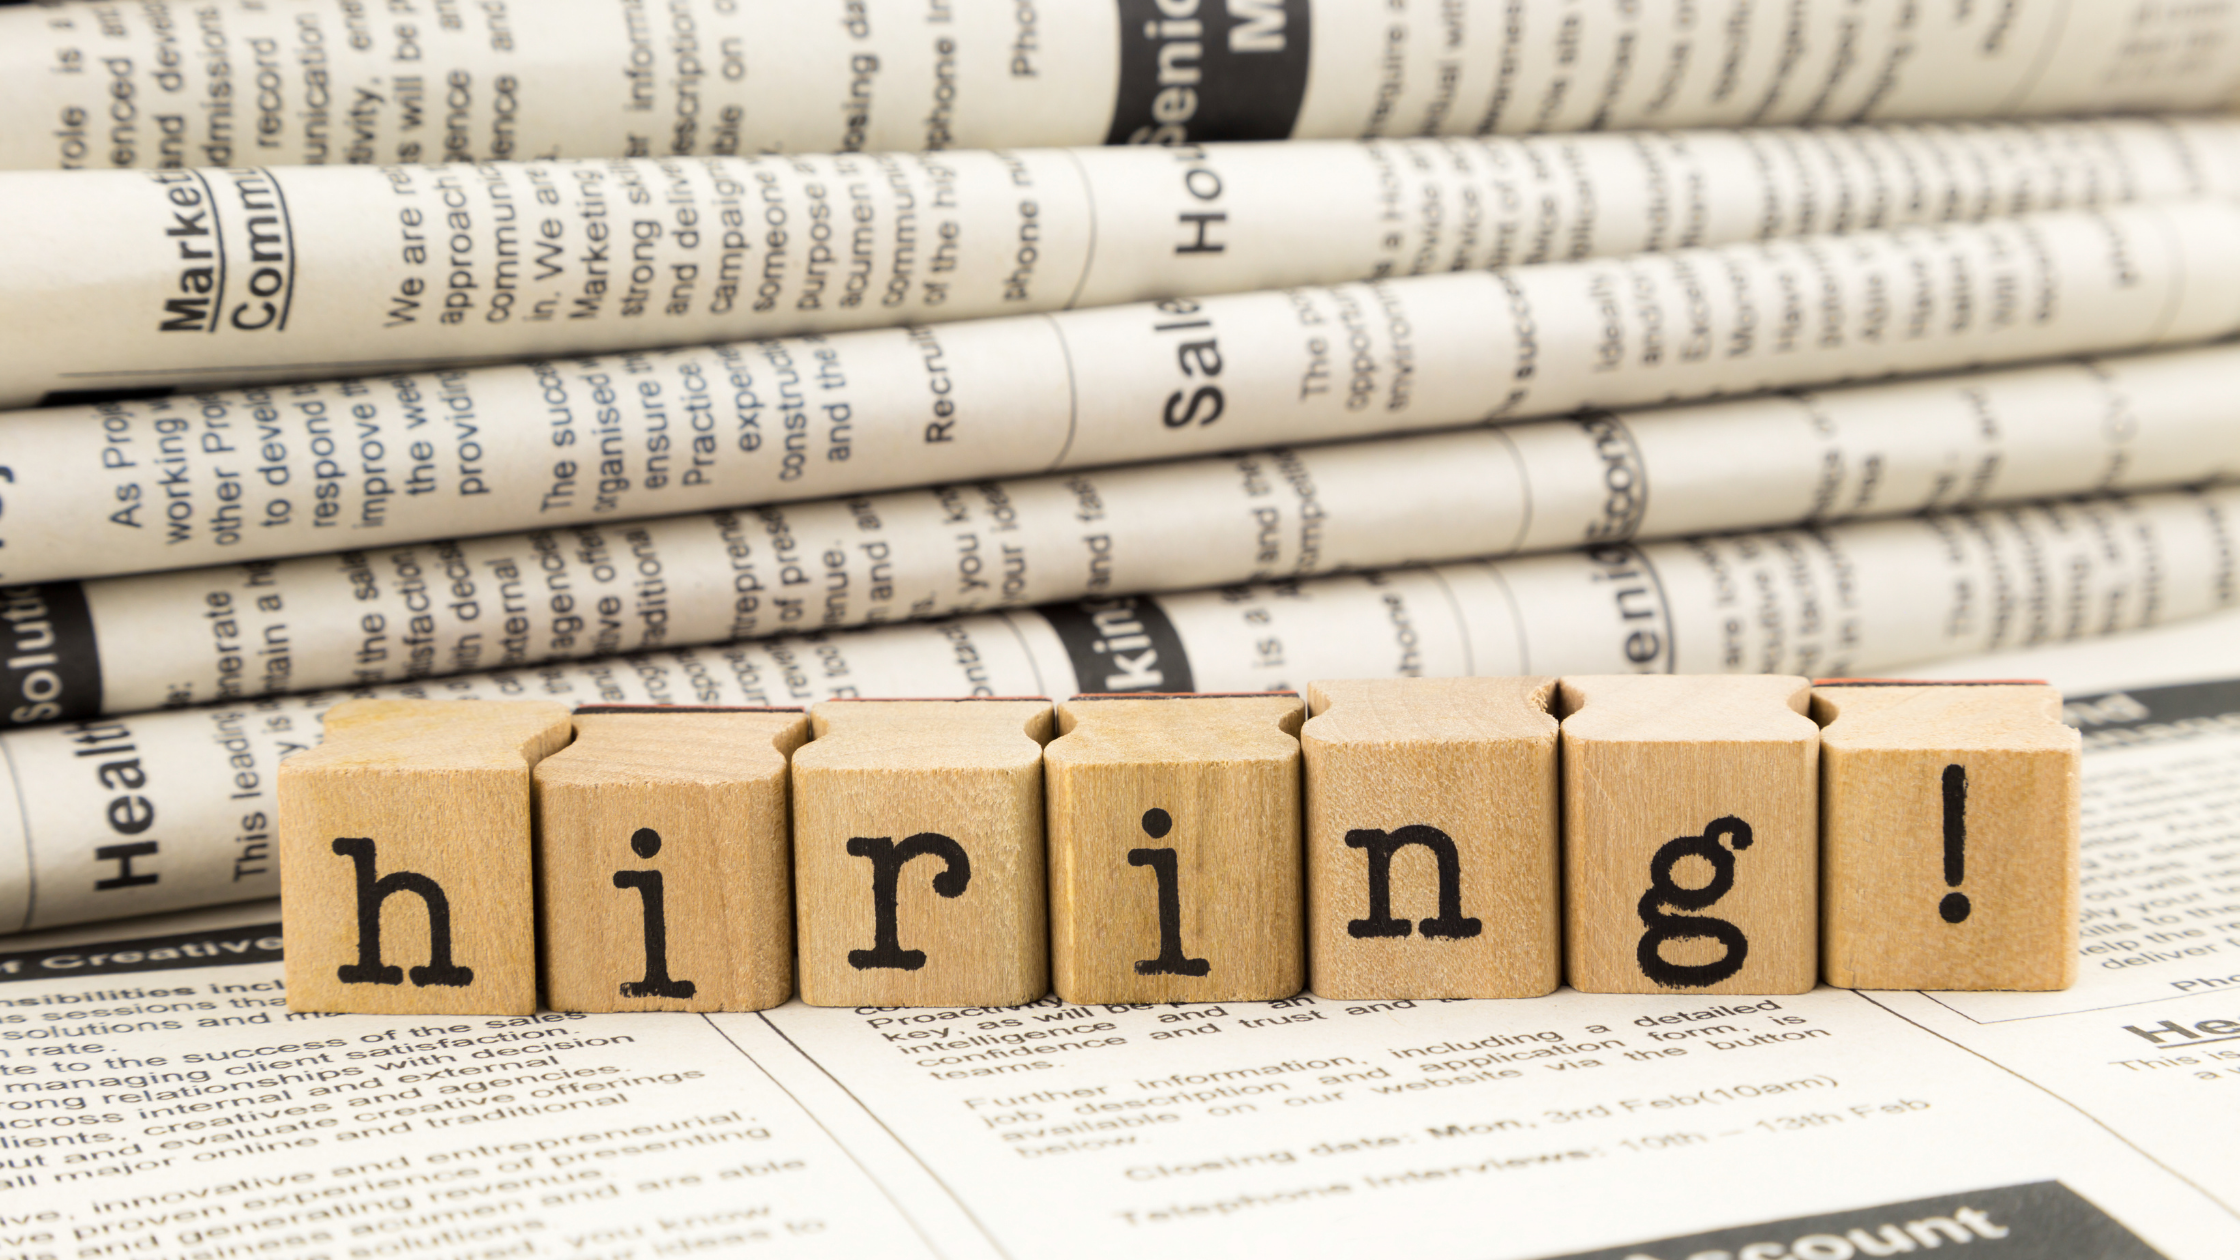 Job advertisements continue to rise